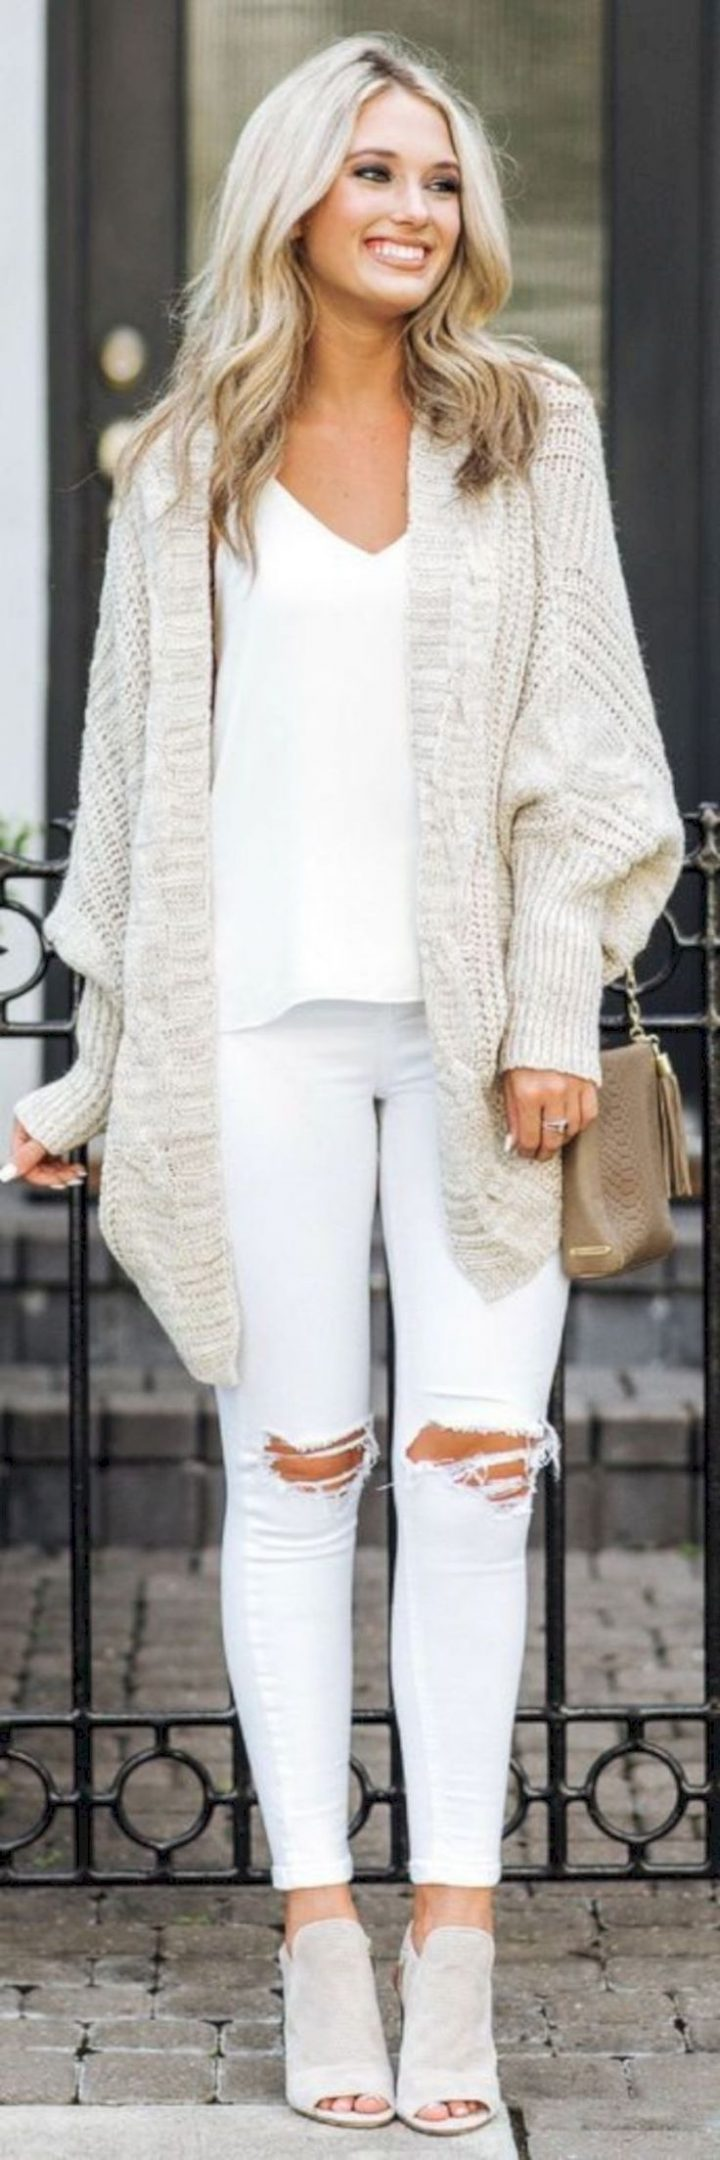 40 All ideas of white clothes for women